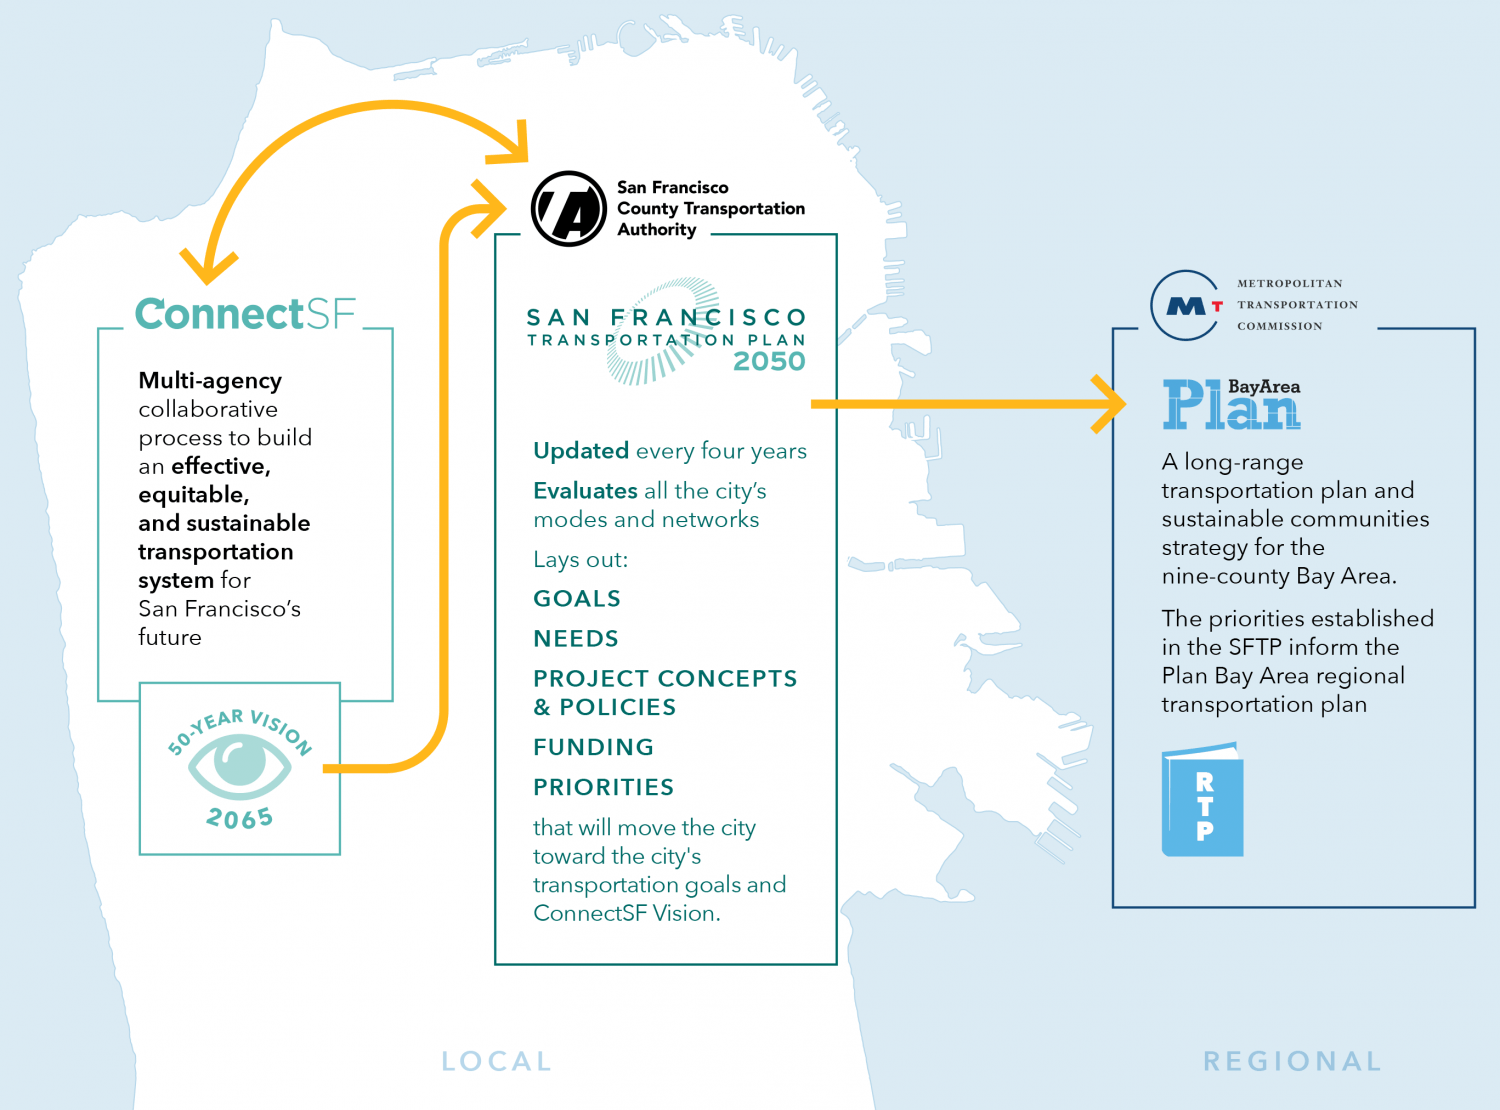 A graphic of how ConnectSF informs the SFTP, and the SFTP informs Plan Bay Area